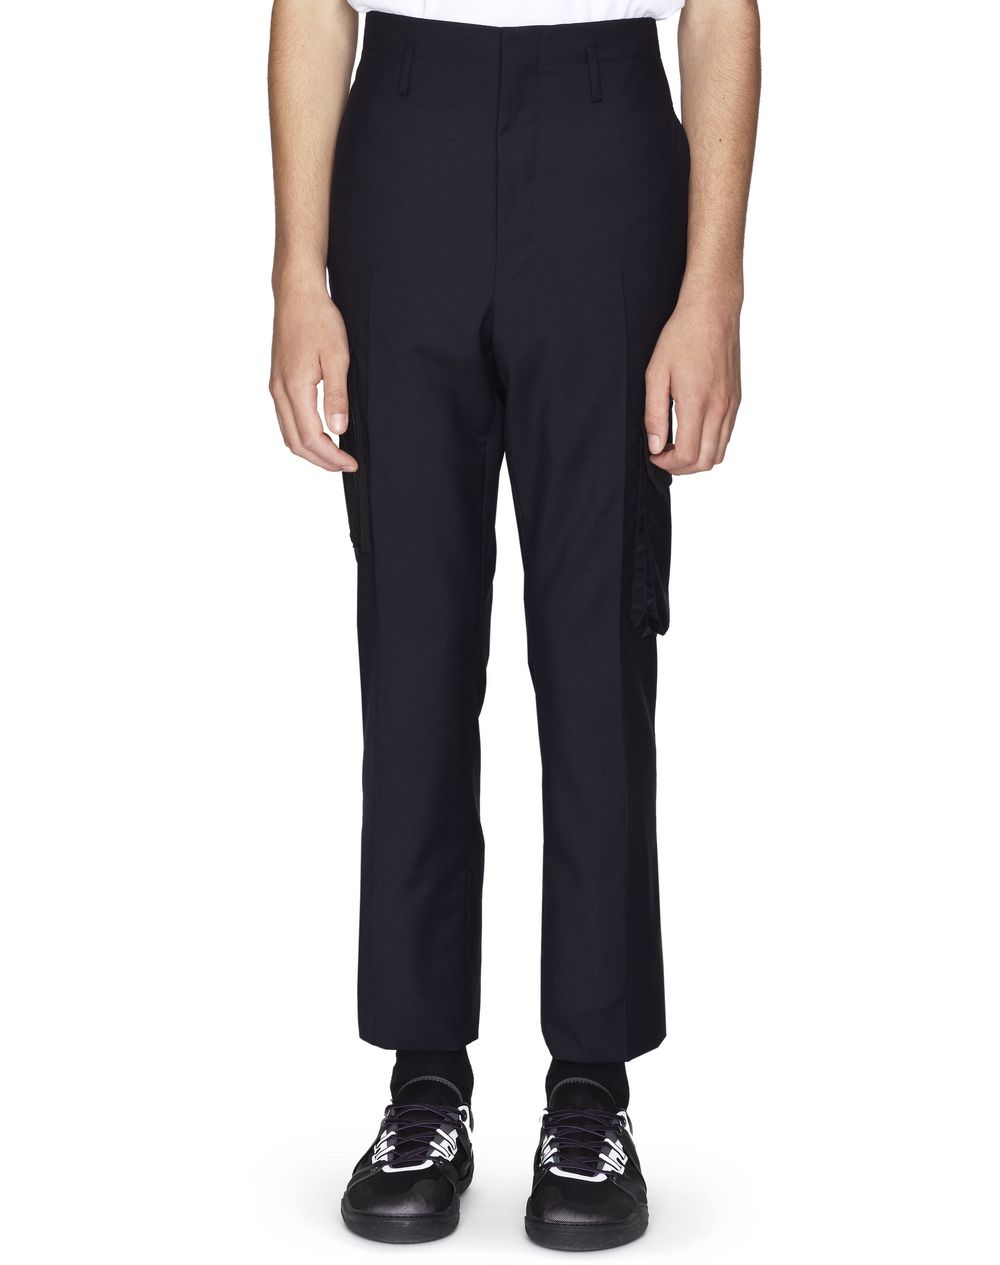 BLACK STRAIGHT-LEG PANTS WITH POCKETS - Lanvin